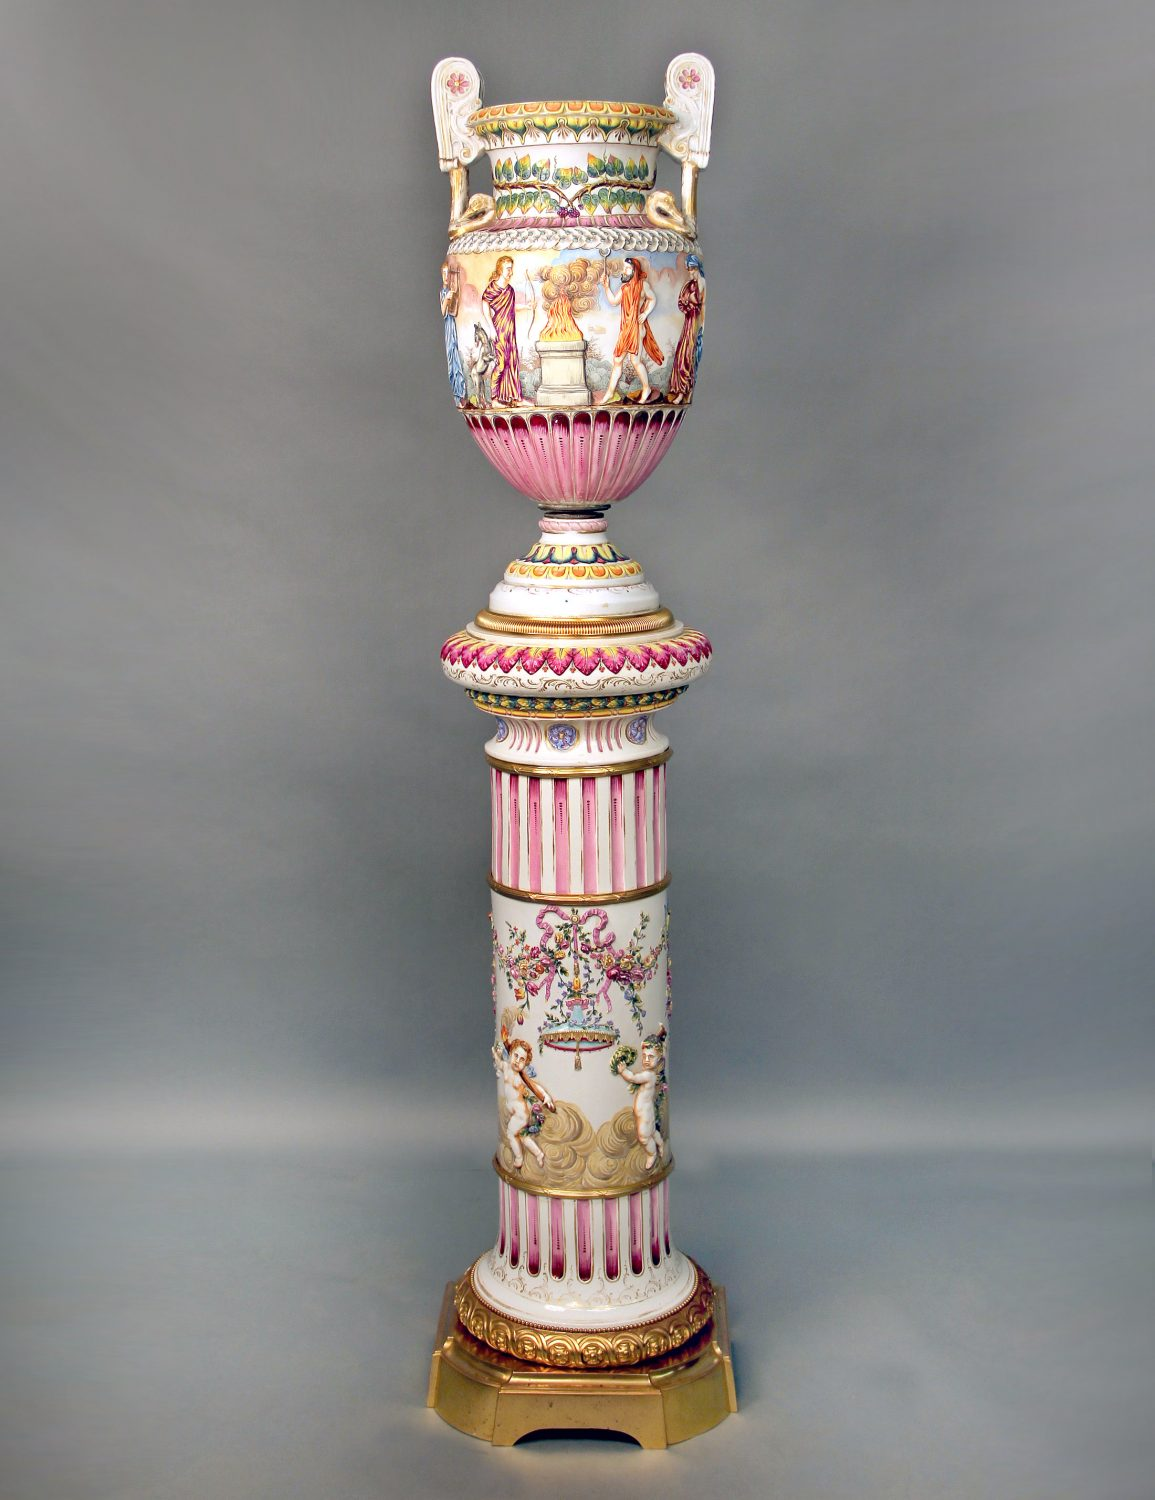 A Large And Interesting Late 19th Century Gilt Bronze And Italian Capodimonte Porcelain Vase And Pedestal Charles Cheriff Galleries,Data Entry Jobs Online From Home Without Investment